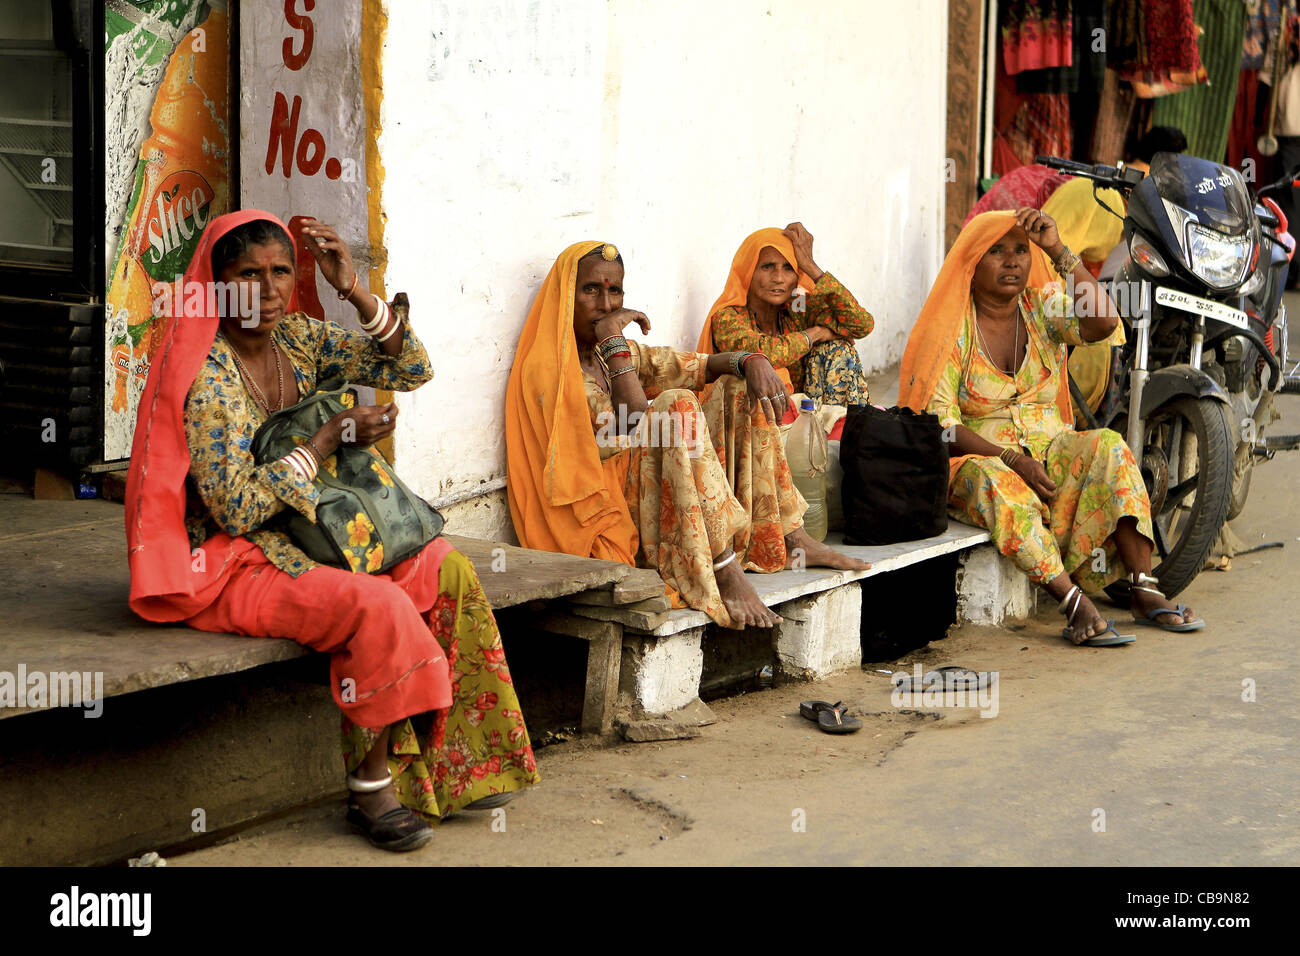 08089647a3 Indian women in traditional dress resting .Pushkar,Rajasthan,India - Stock  Image